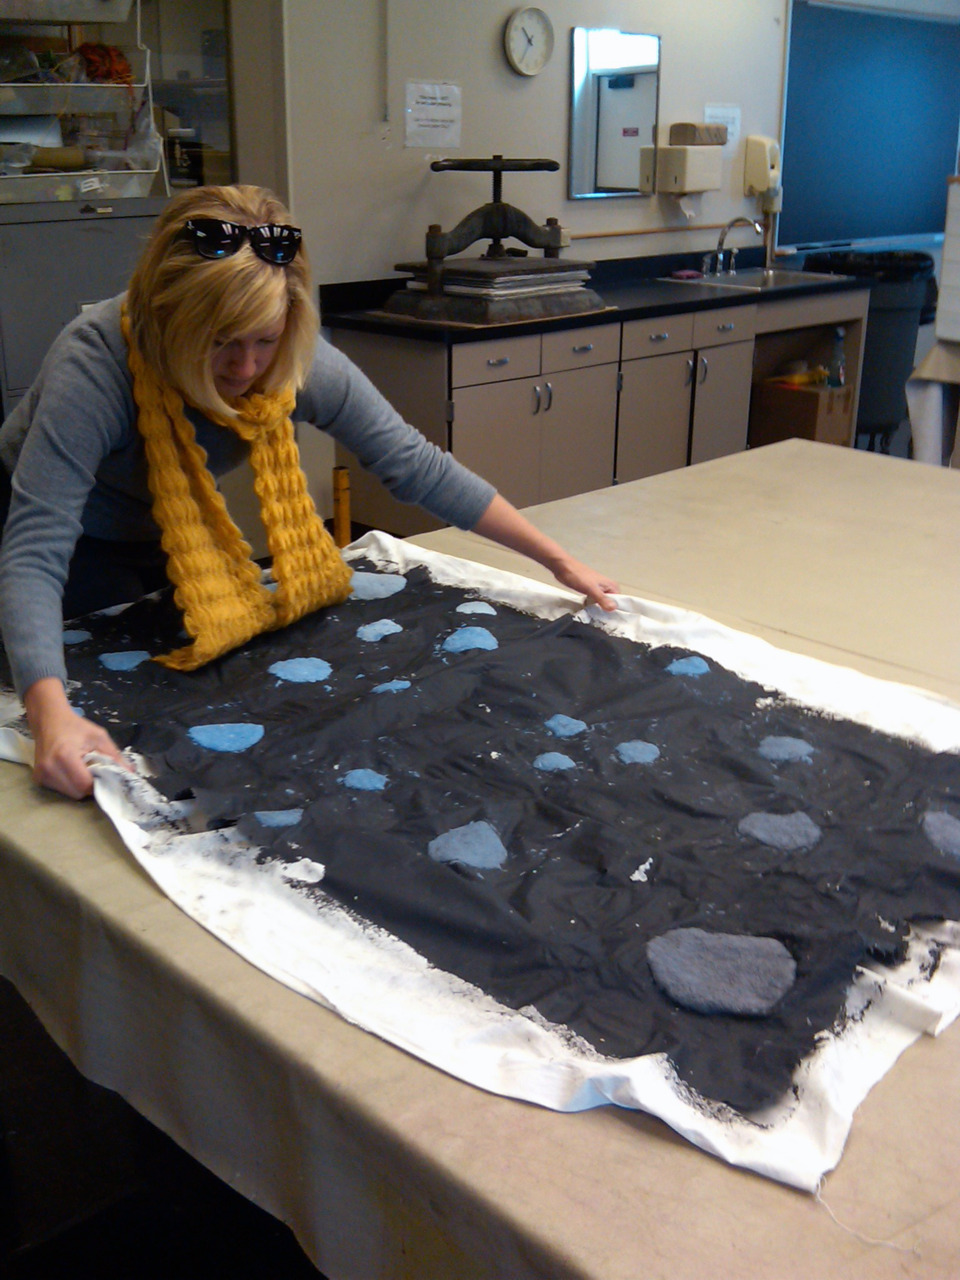 My friend, Delaney, removing her papermaking project from its cloth support.